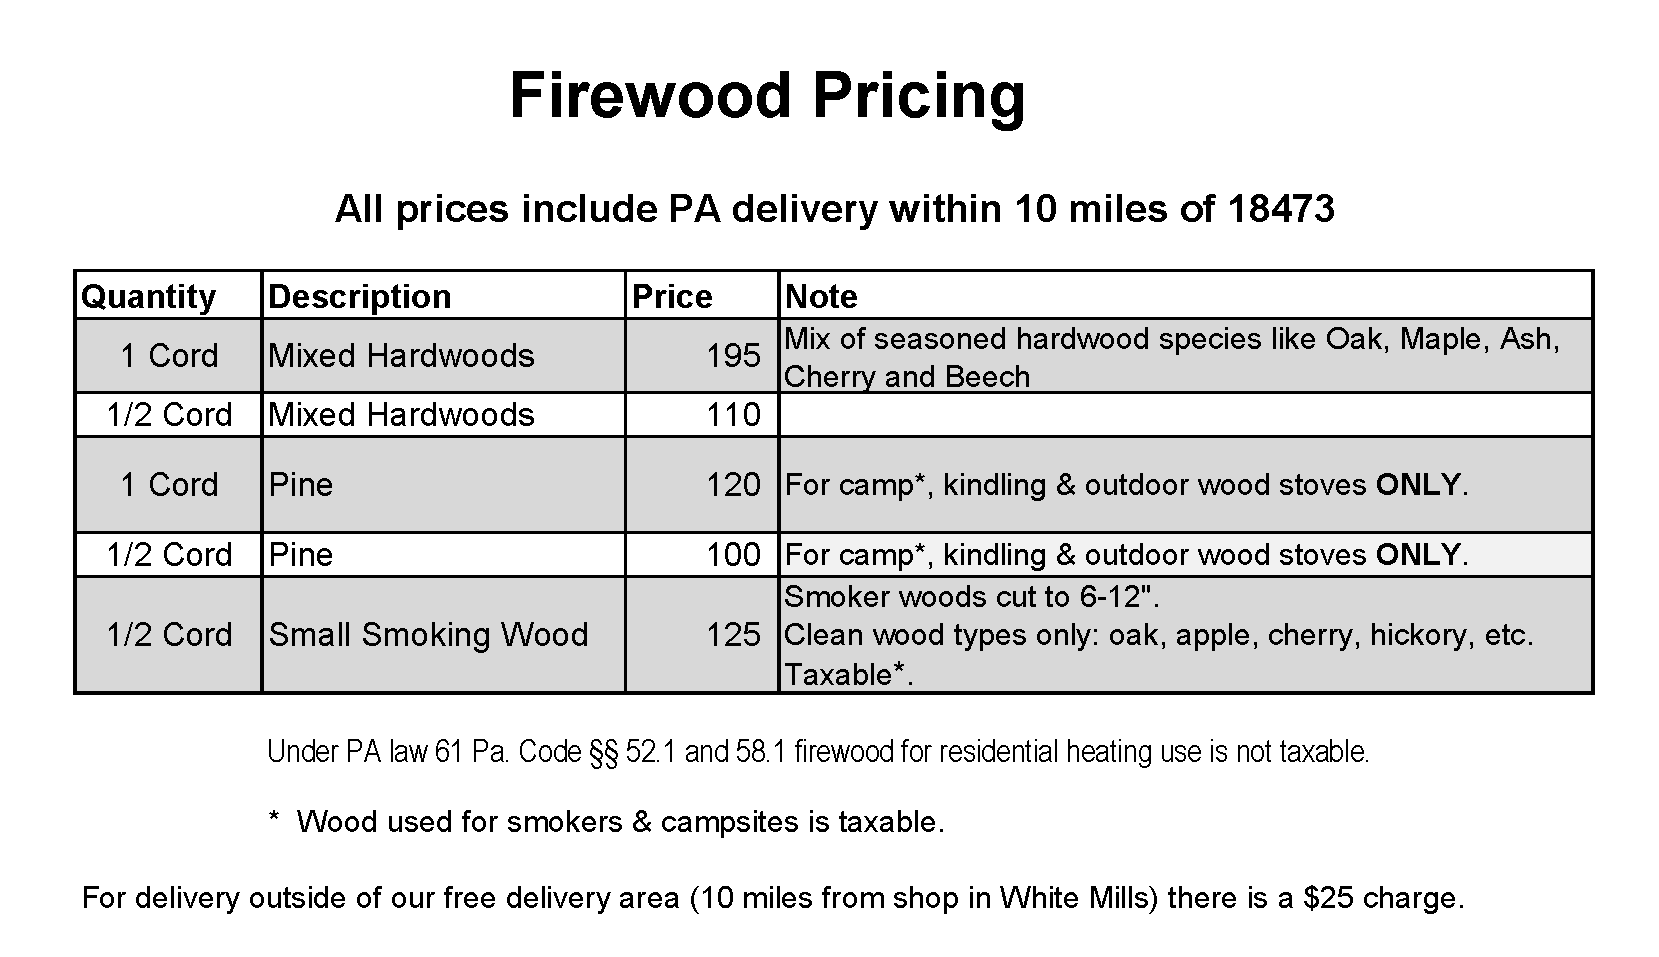 Apple Creek Current Firewood Pricing